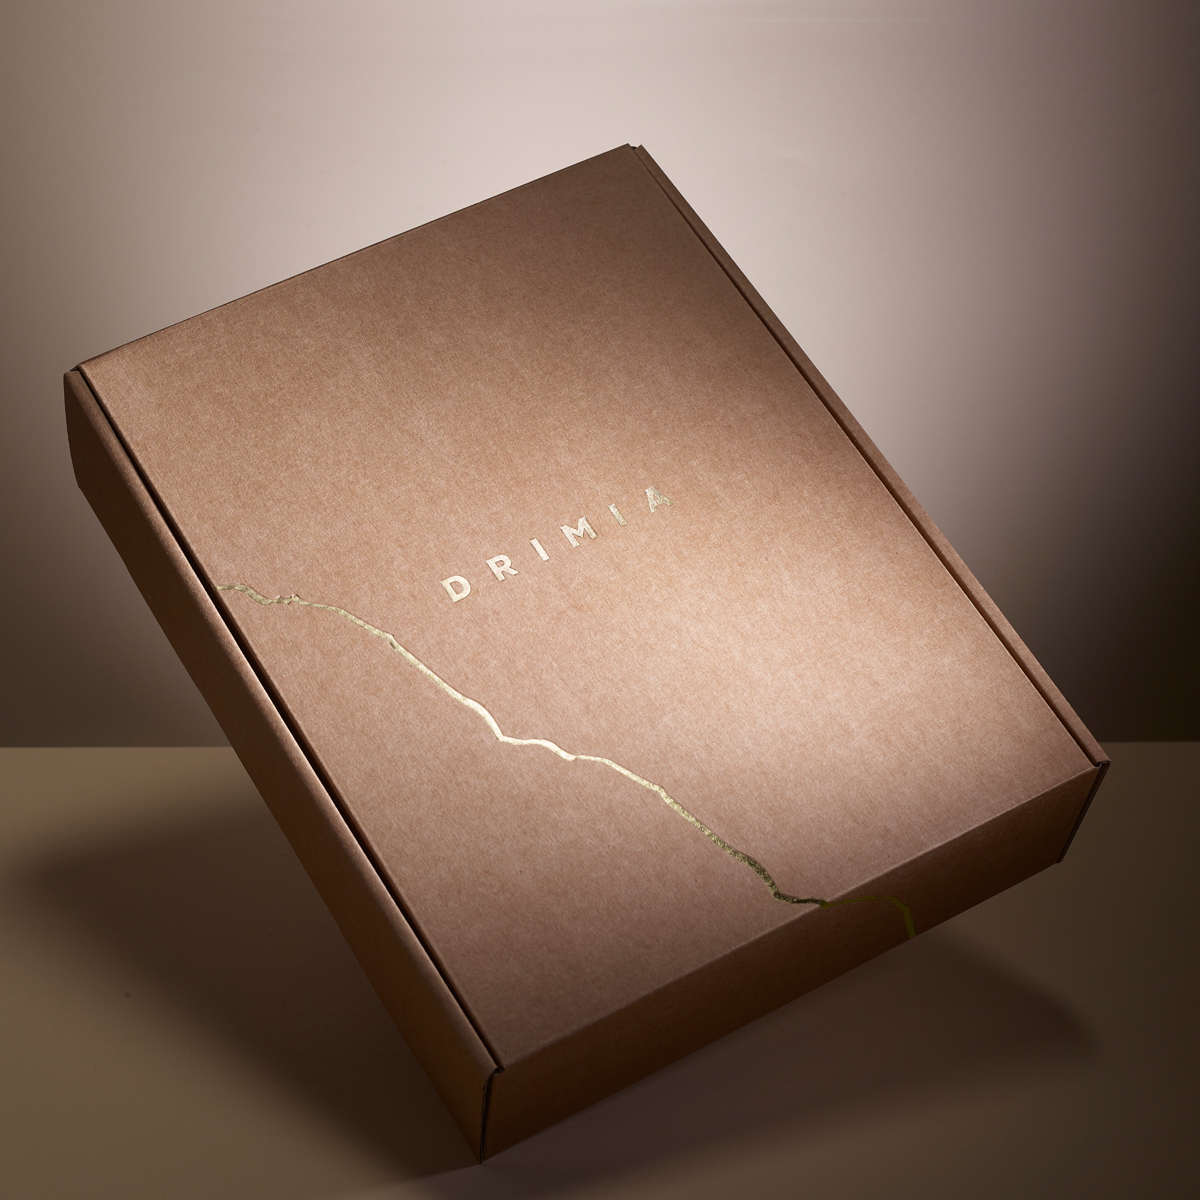 Dov Kroll and Dekel Maimon Create New Gift Box for Drimia Winery